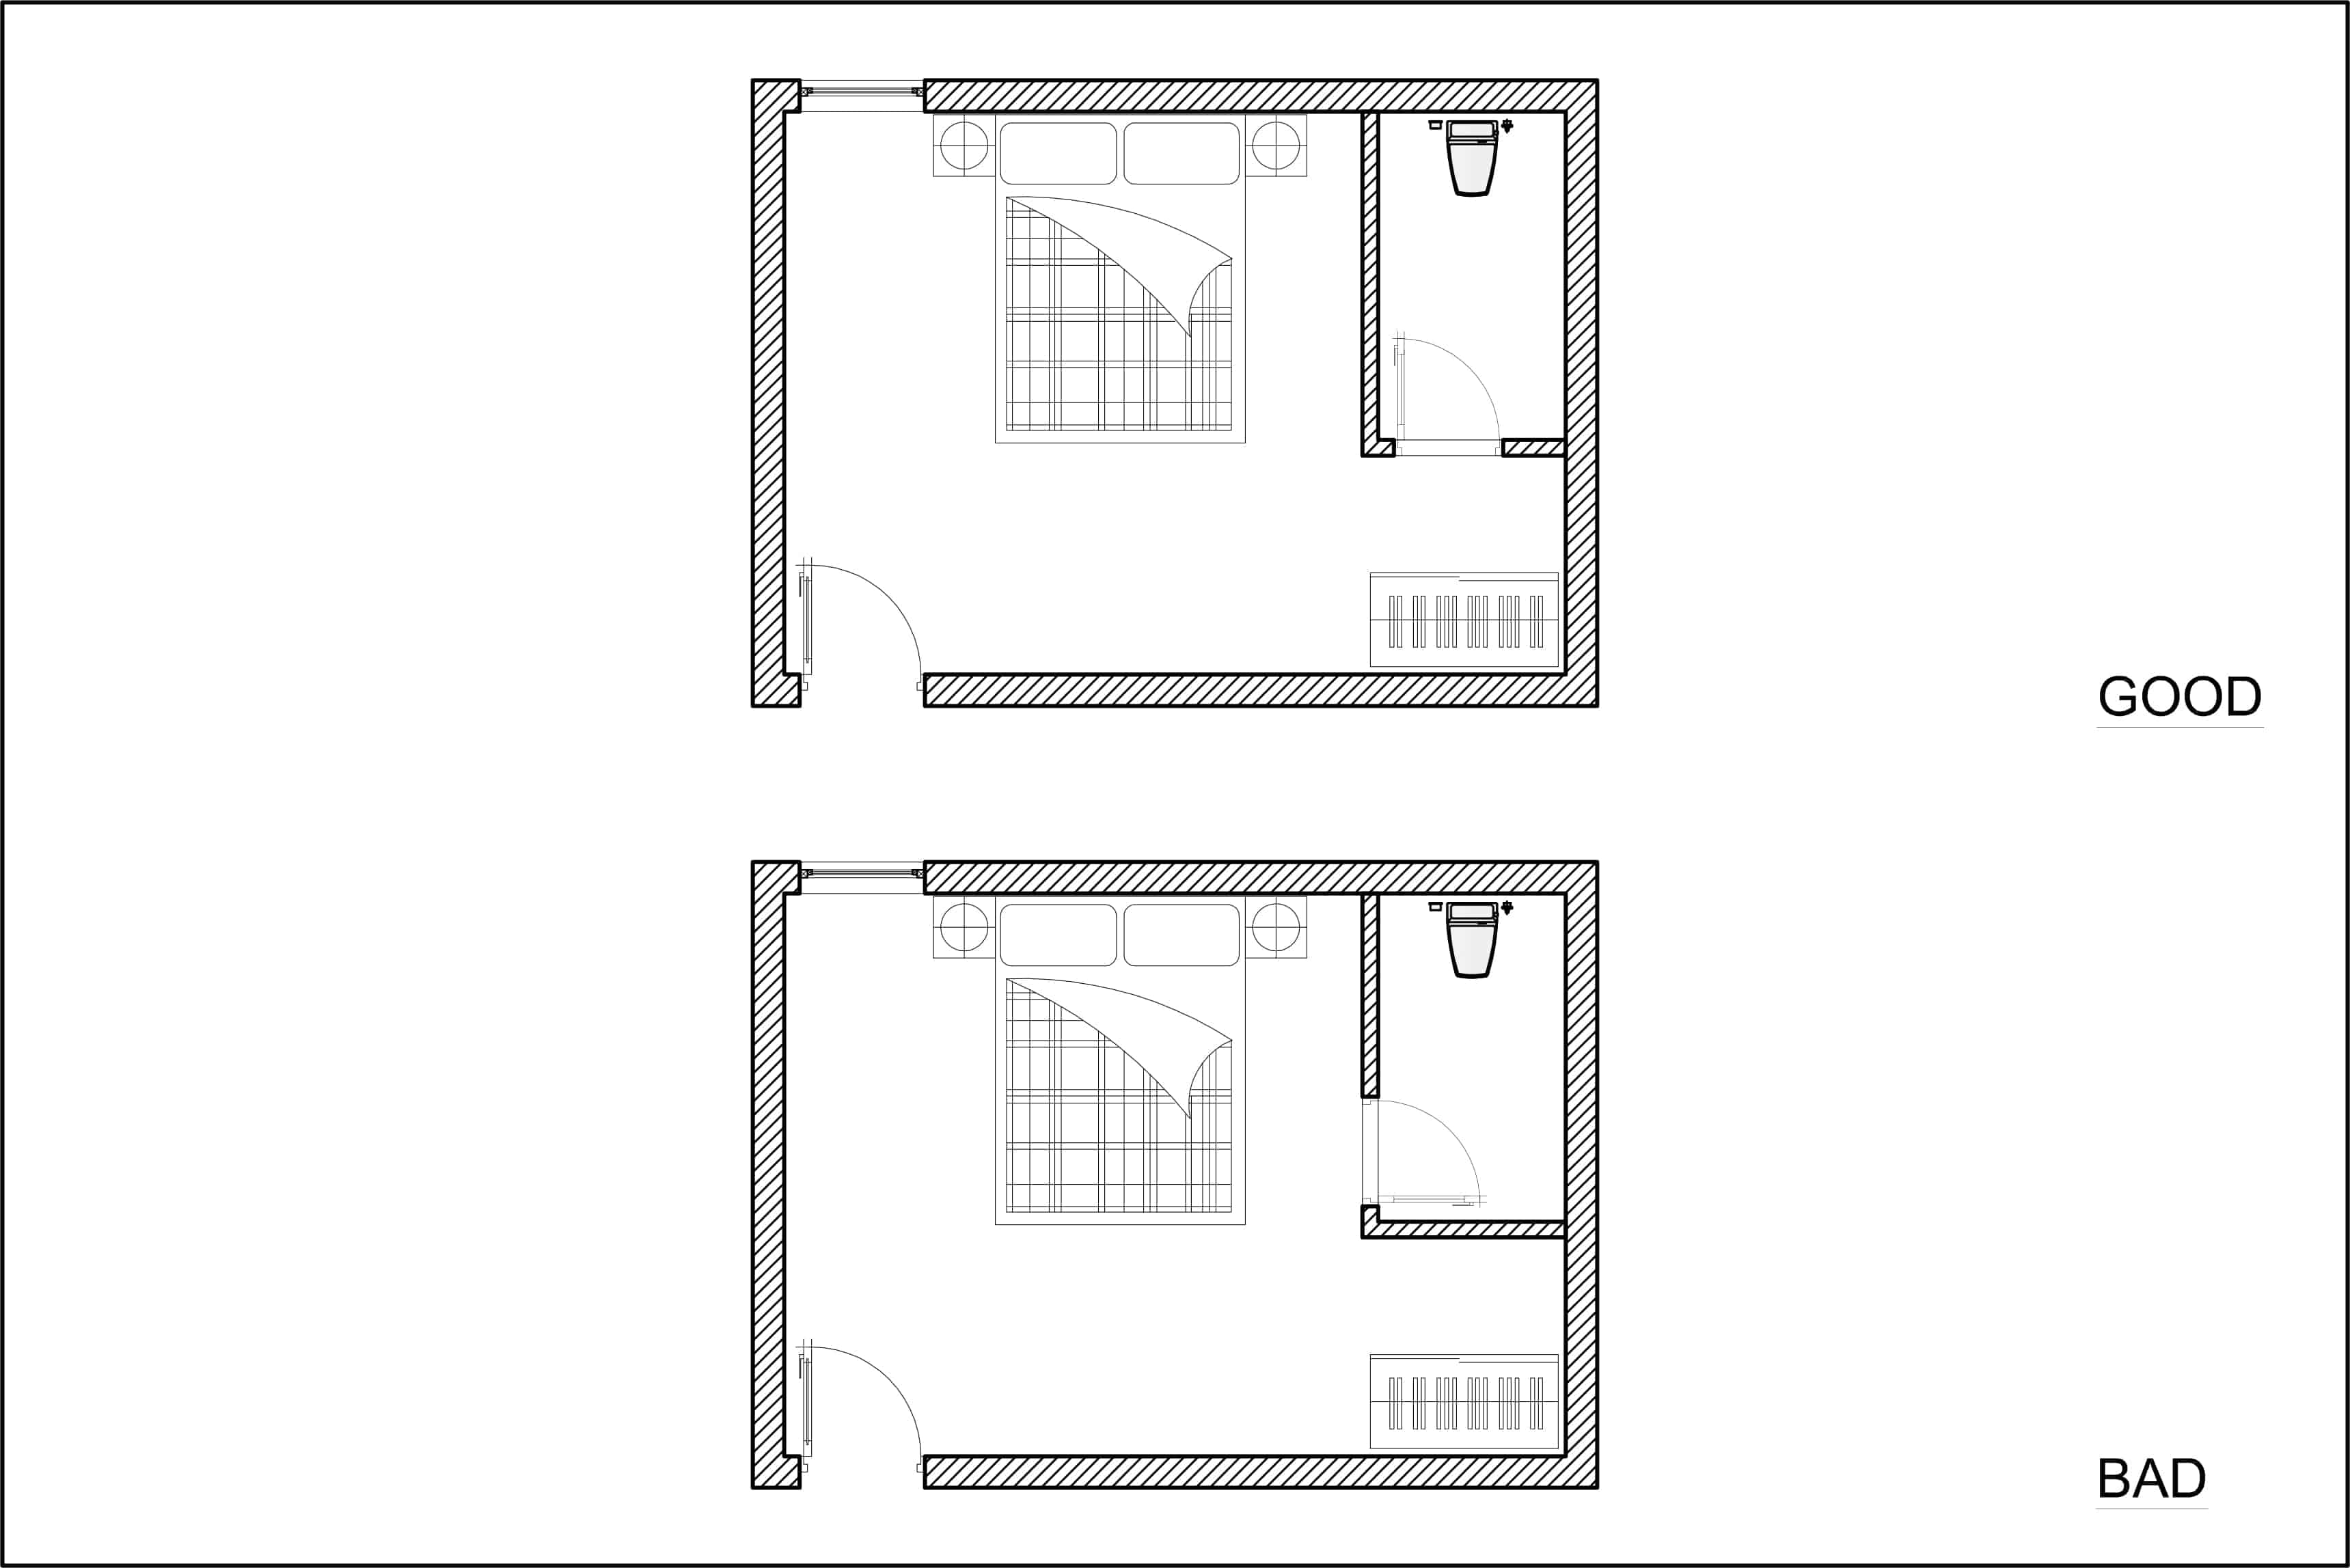 Layout diagram of good and bad bedroom en suite door location